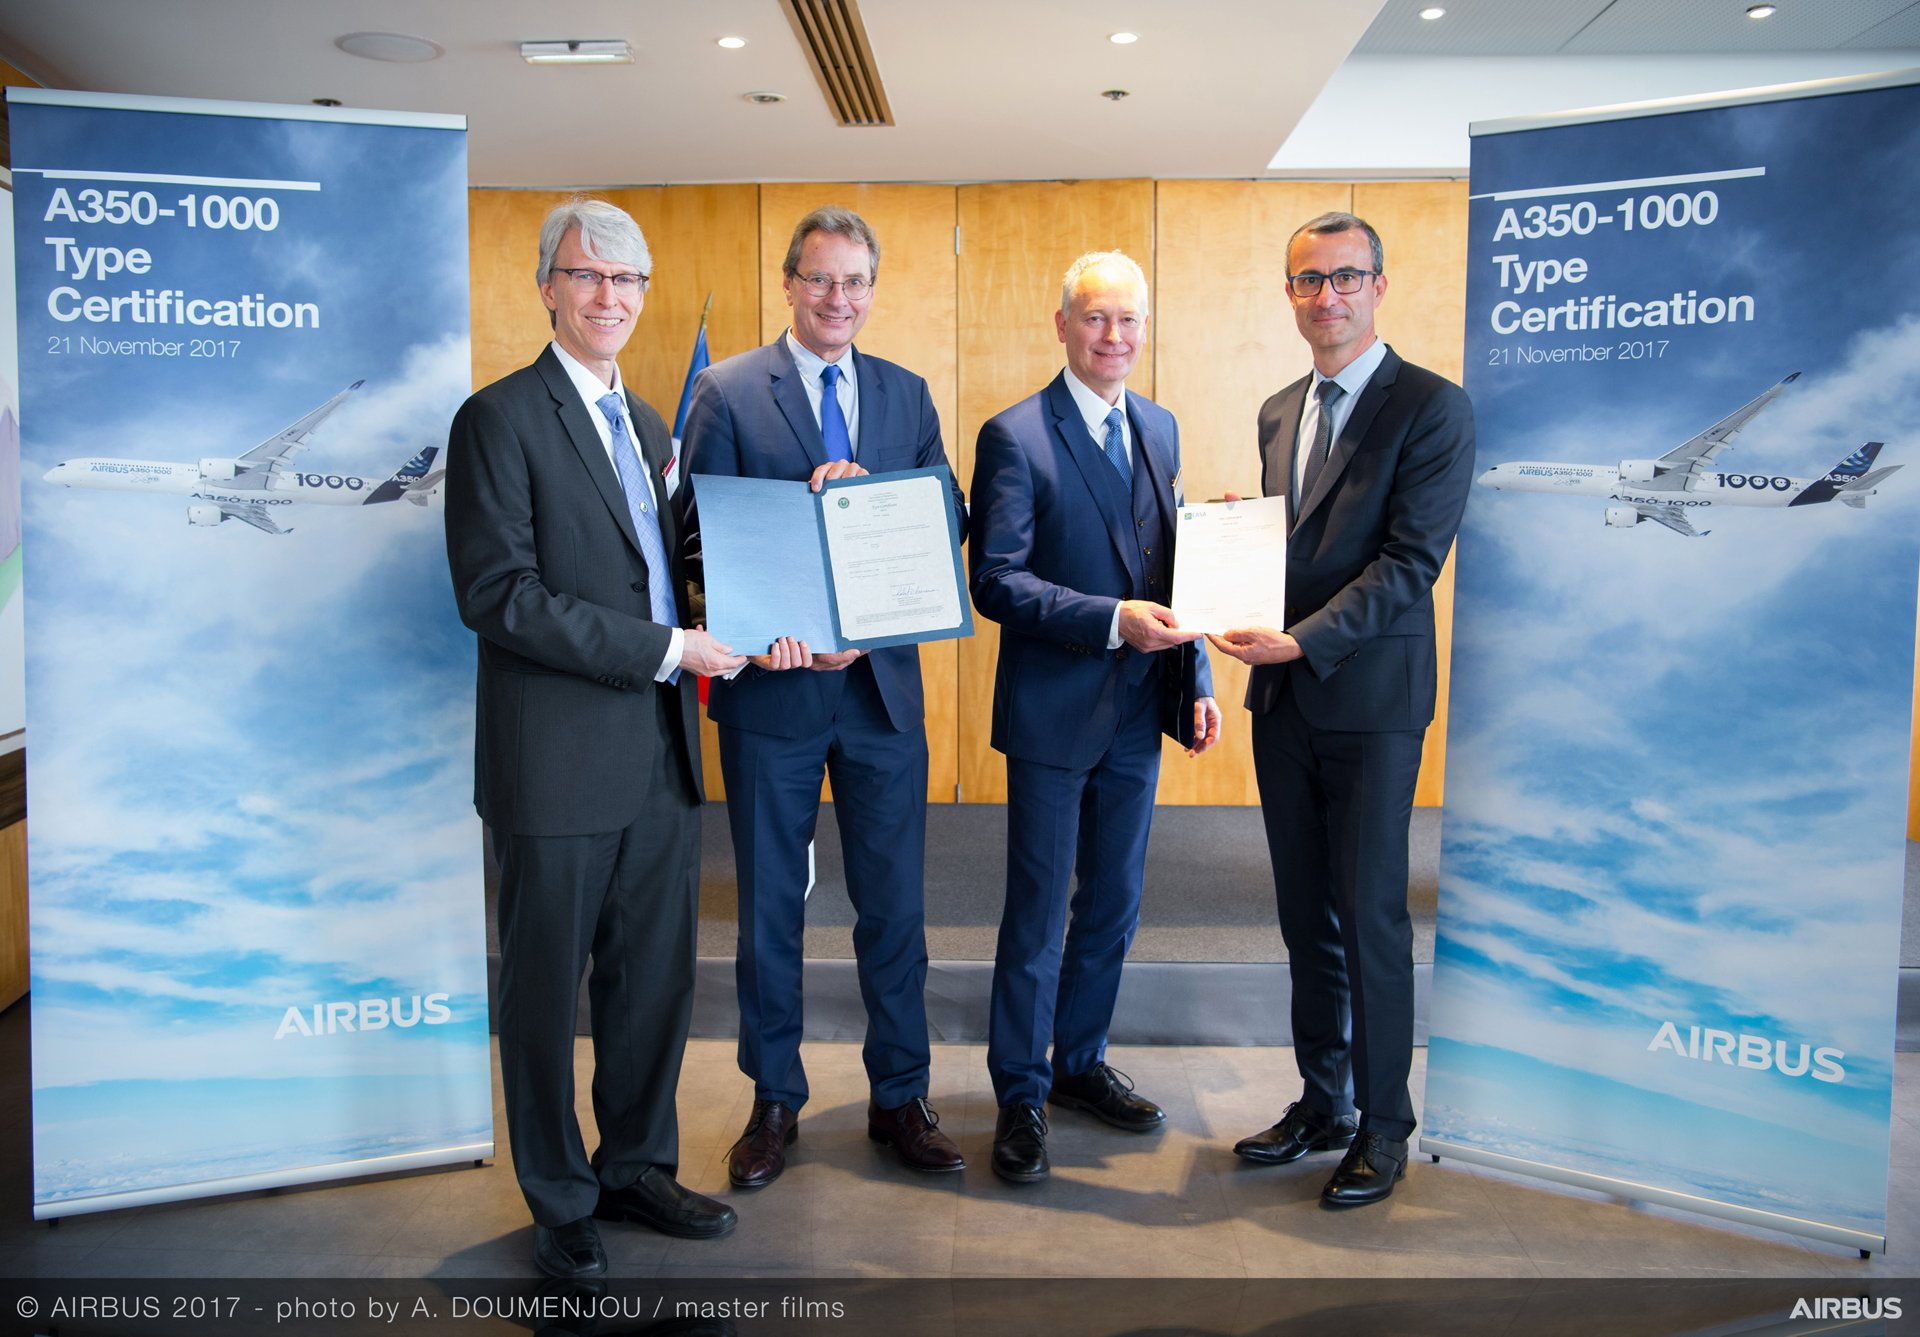 The largest variant of its A350 receiving type certification from the European Aviation Safety Agency (EASA) From left to right: Frederic Guerin, FAA International Field Representative, Brussels office, Charles Champion, Airbus Commercial Aircraft EVP Engineering, Trévor Woods, EASA's Certification Director, Alain De Zotti, Airbus Commercial Aircraft Chief Engineer A350 XWB